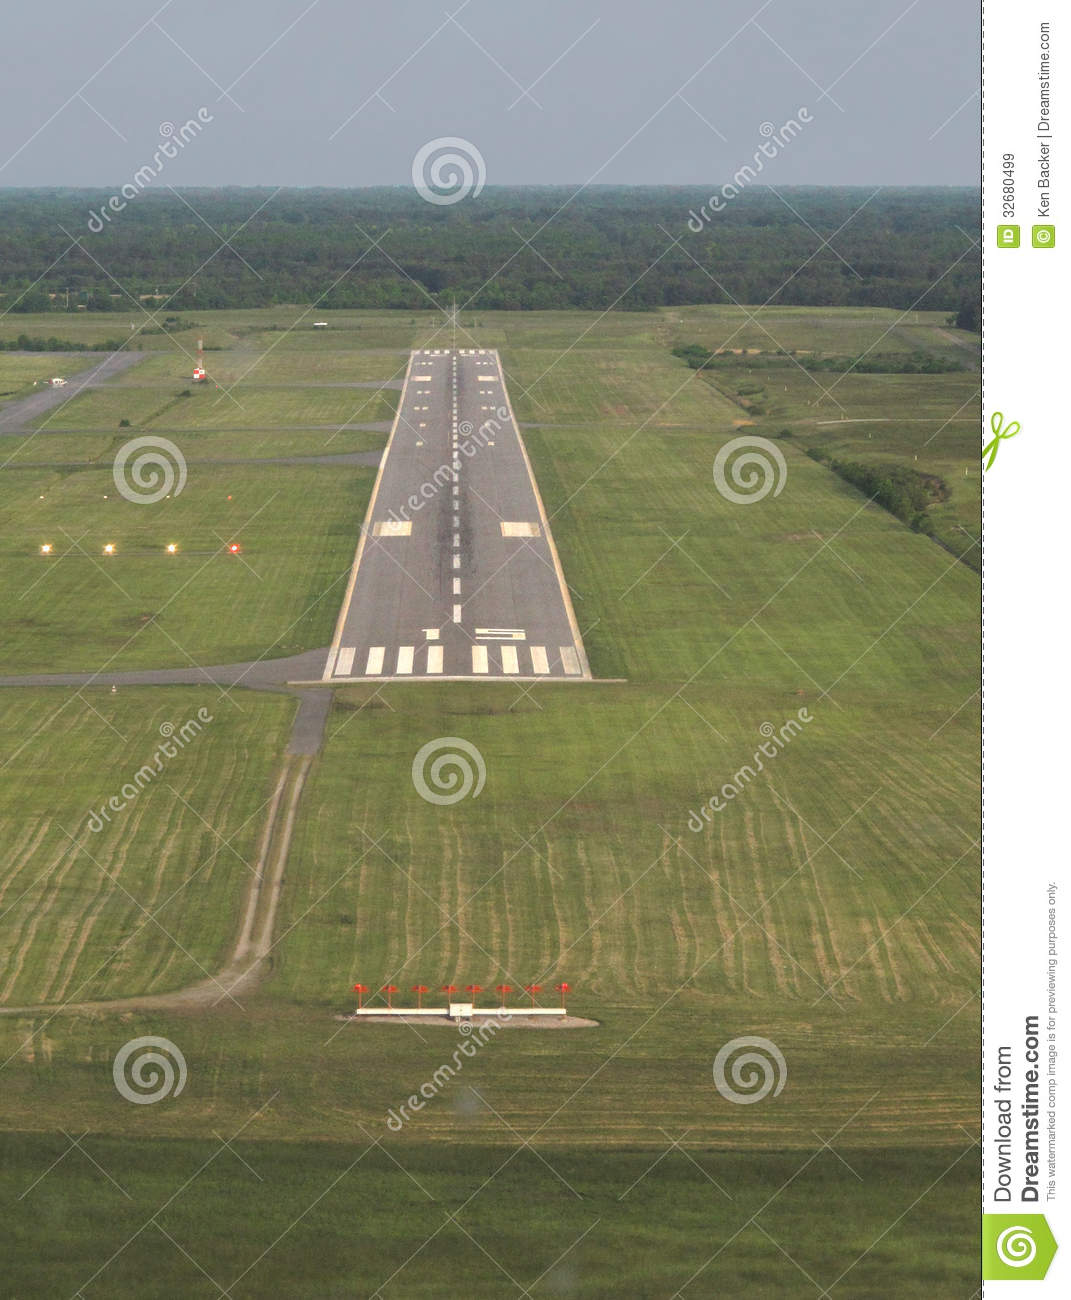 Aerial View Runway At Dusk. Royalty Free Stock Images.